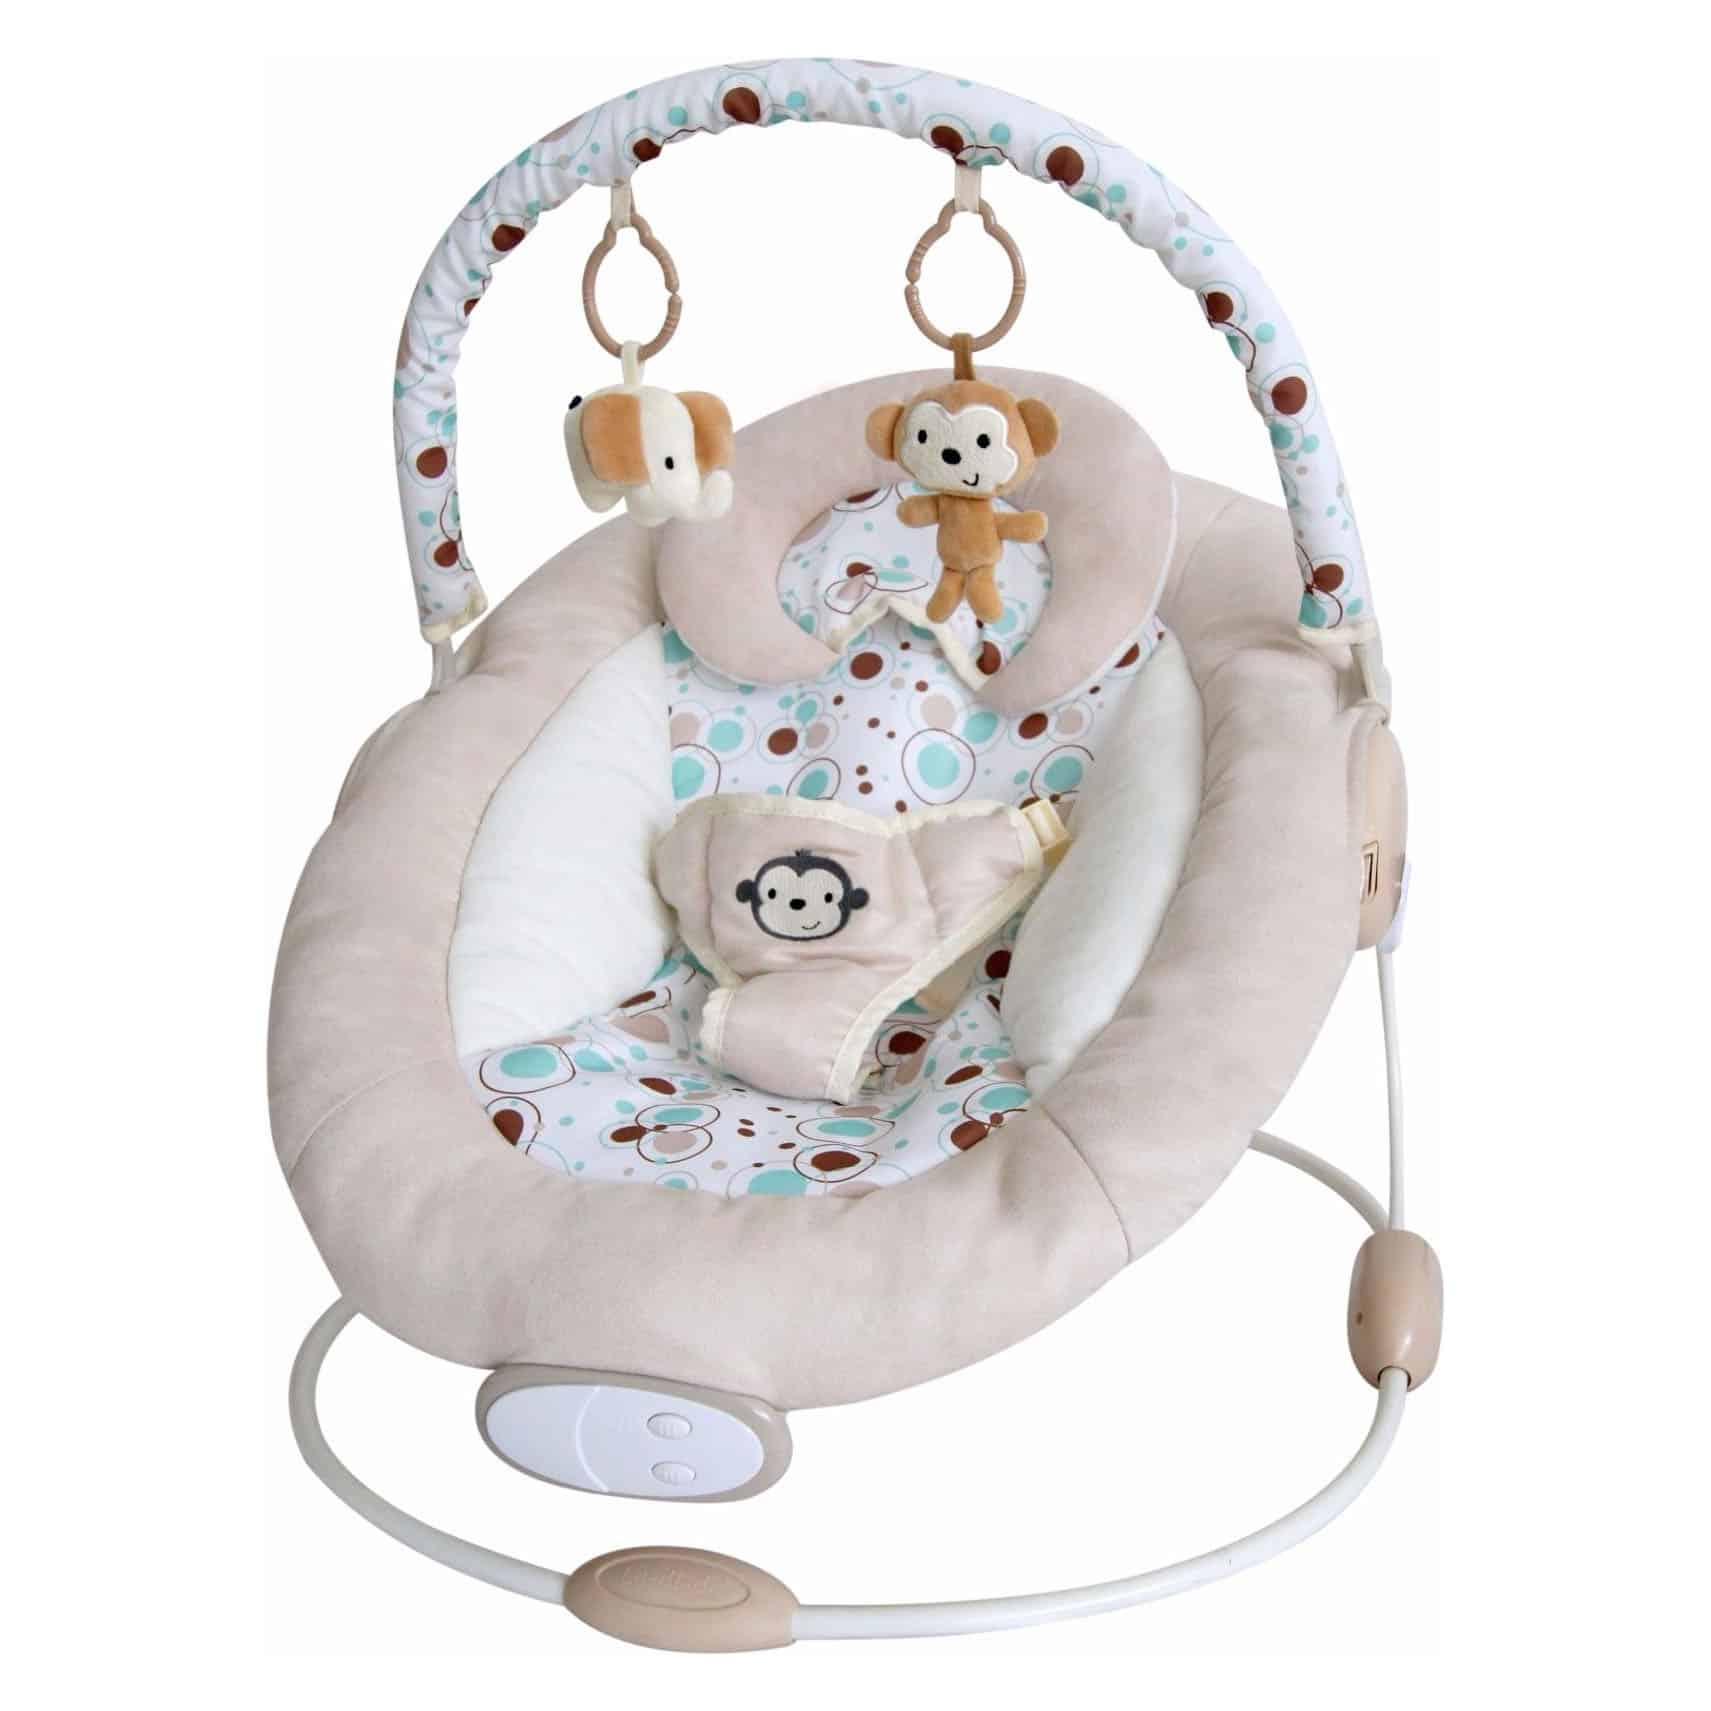 Babysitter Elegant and Comfort Baby Bouncer